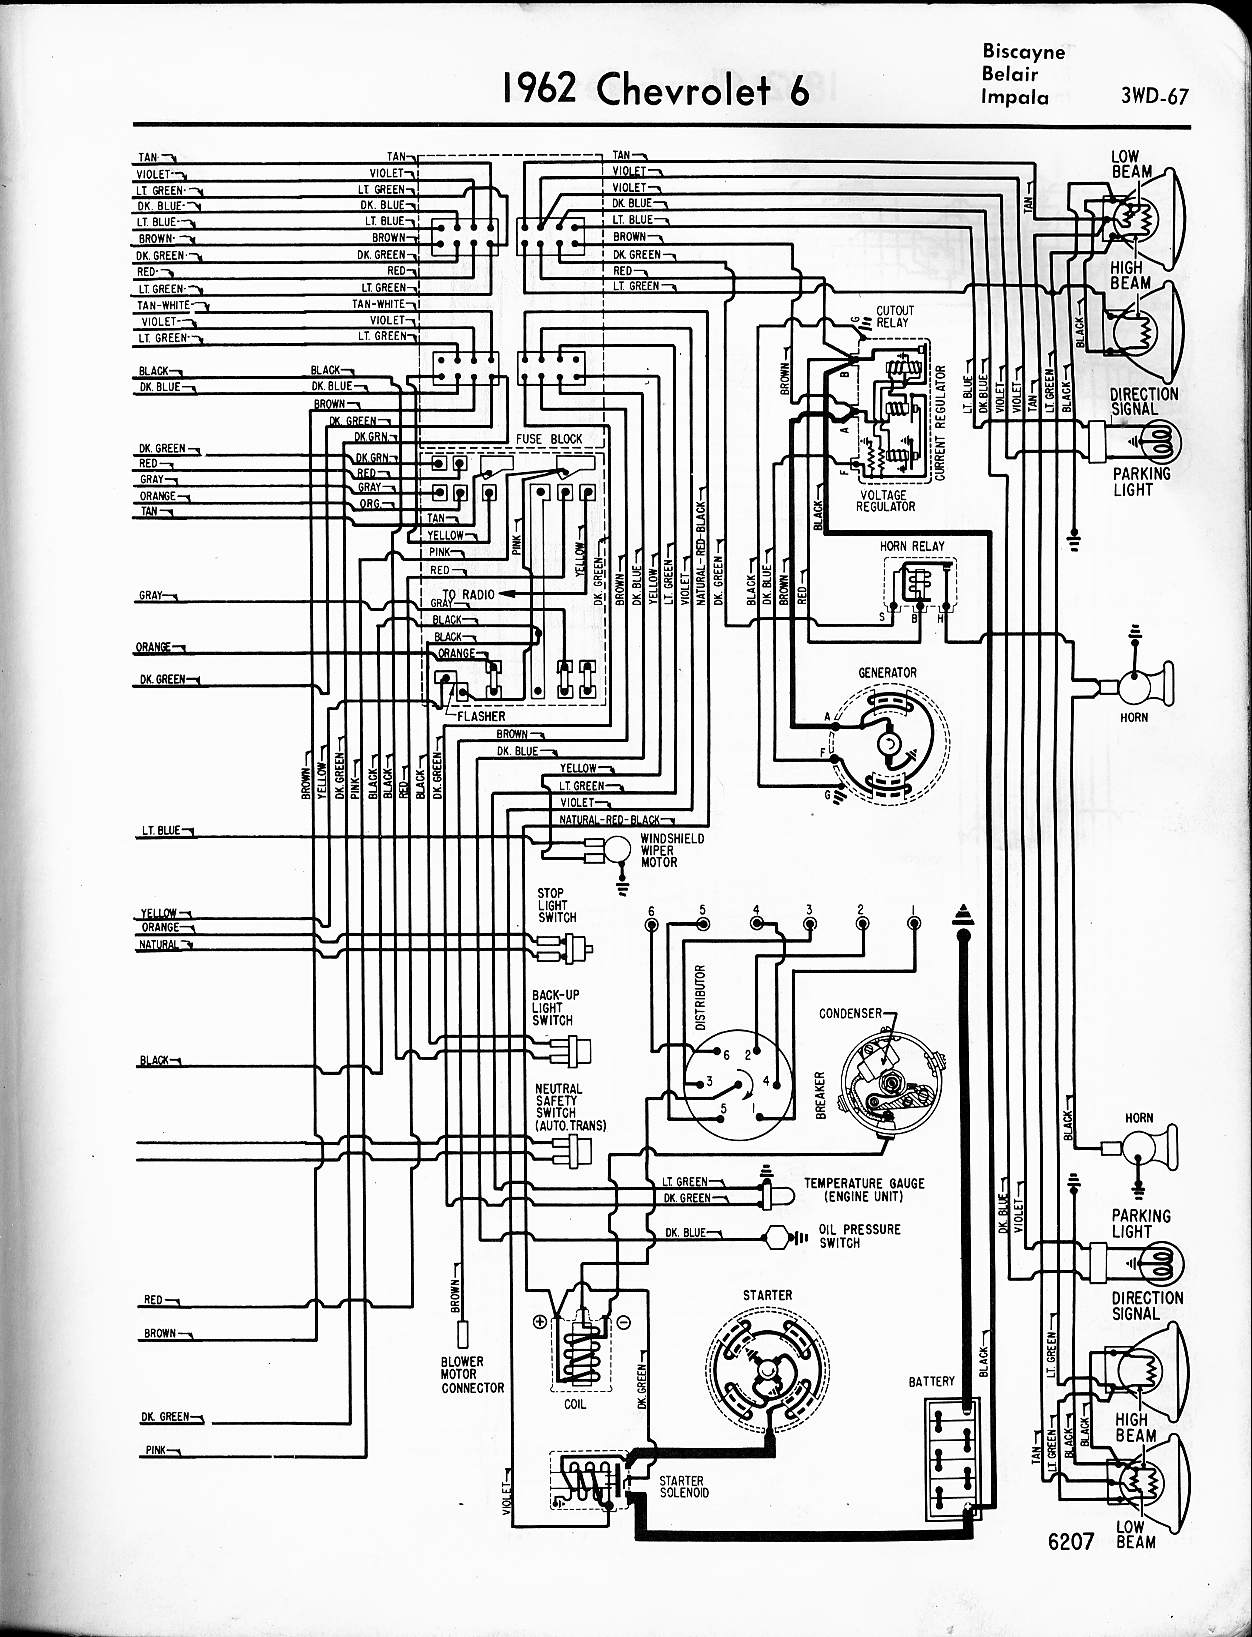 1969 jeep cj5 dash wiring diagram wiring library 1971 Jeep CJ5 Wiring-Diagram 1962 impala wiring diagram just wiring data jeep cj5 wiring schematic 1969 impala wiring diagram schematic